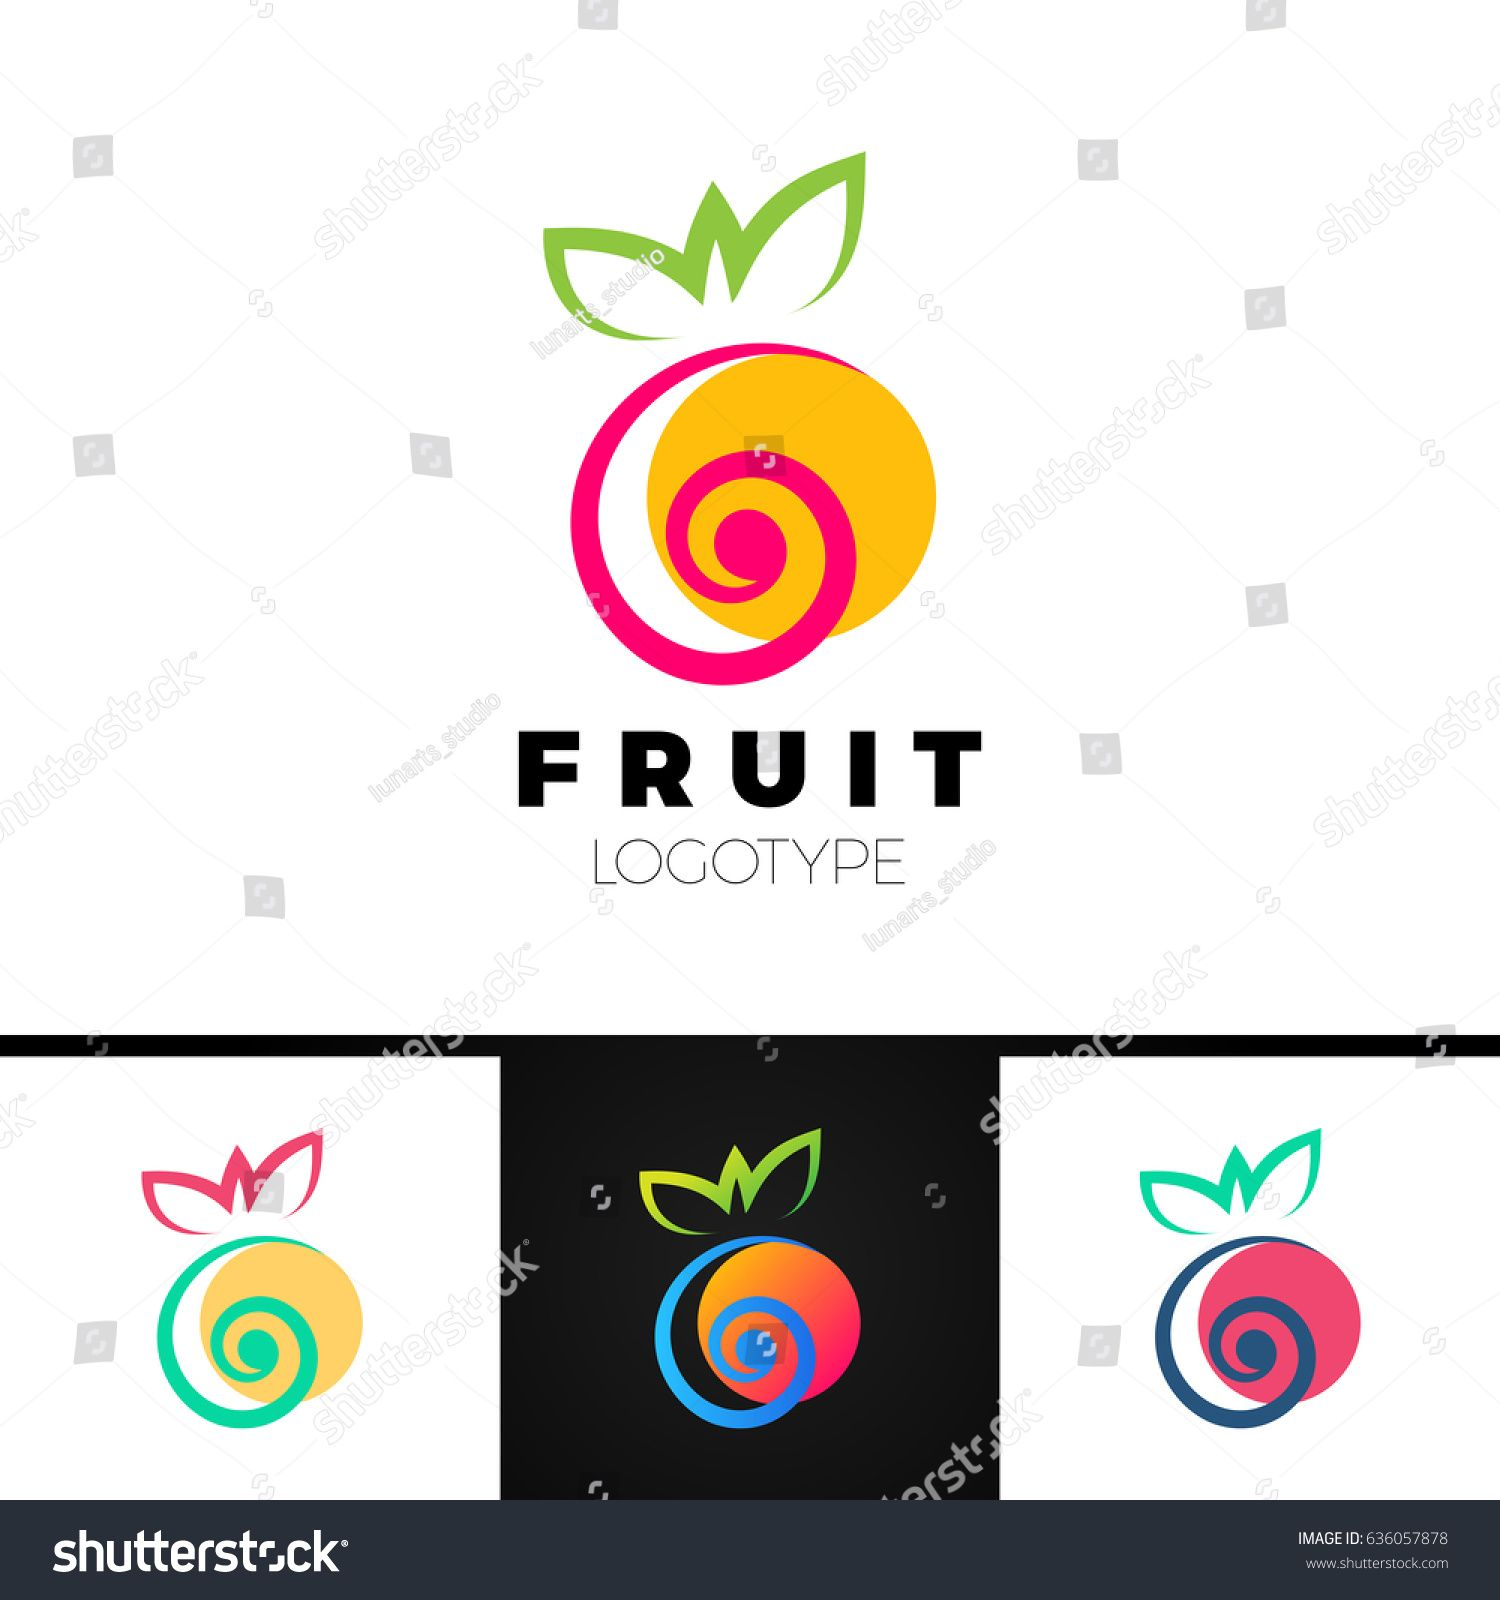 Abstract Fruit Logo Template With Spiral Element Creative Symbol